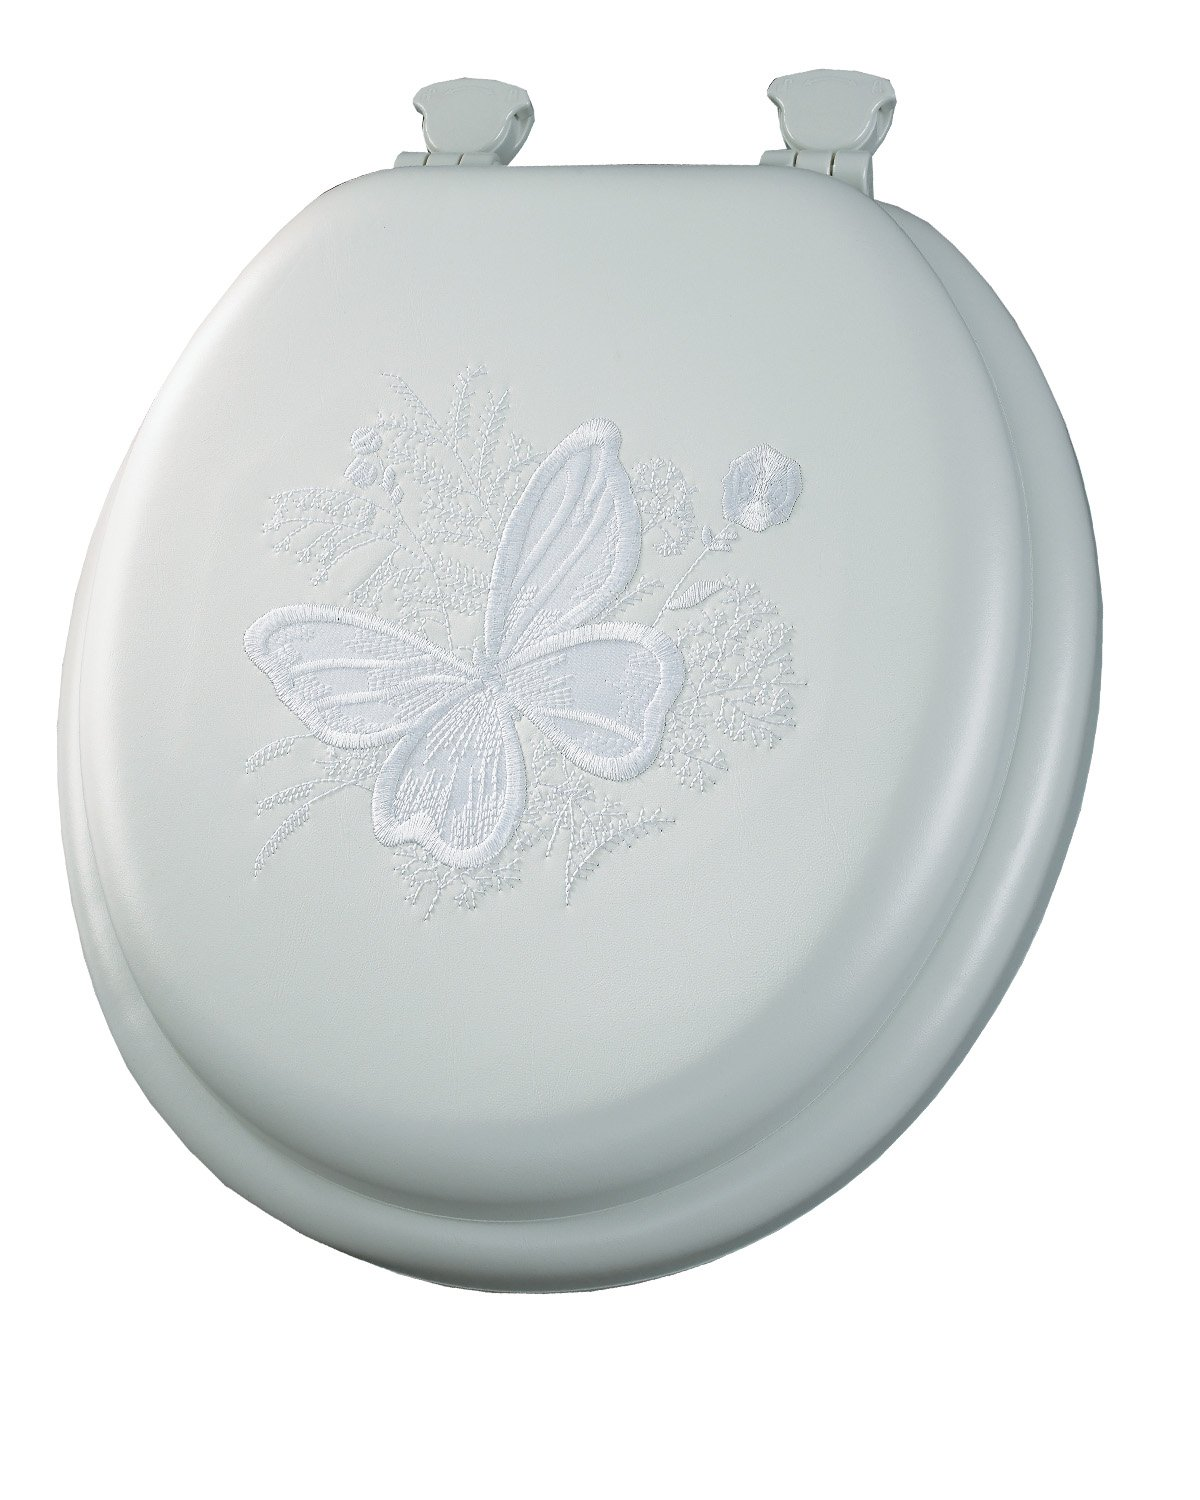 Mayfair 1386EC 000 Butterfly Embroidered Soft Toilet Seat